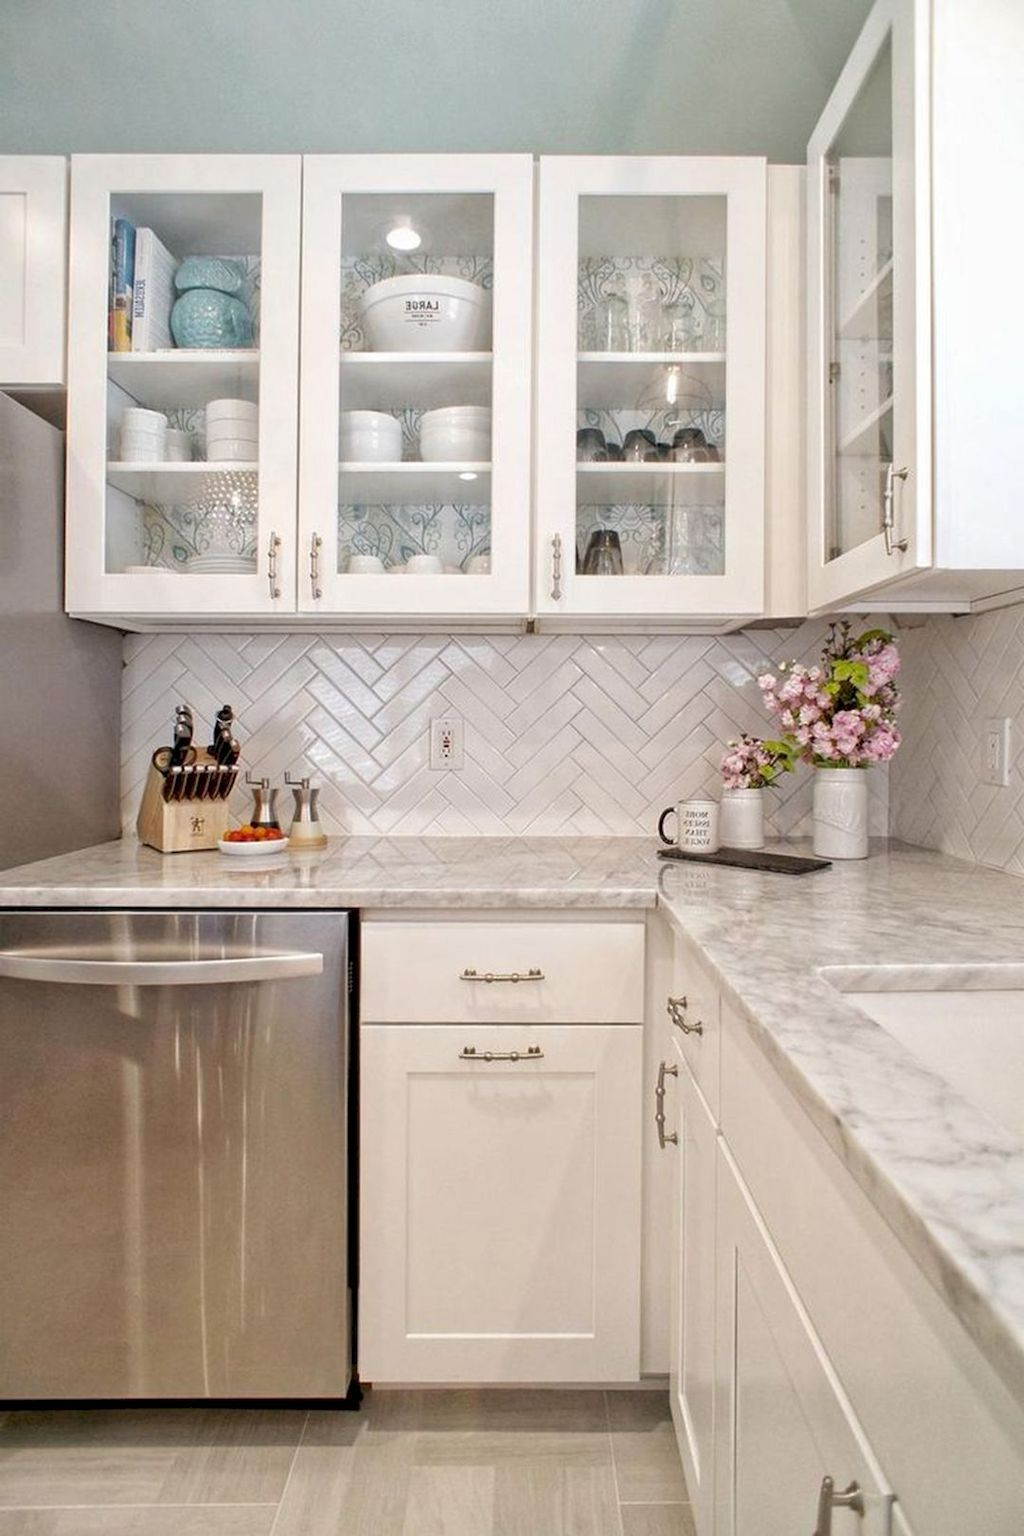 Cool 60 Awesome Modern Kitchens Ideas Remodeling On A Budget Https Amazing Kitchen Designs On A Budget Decorating Design